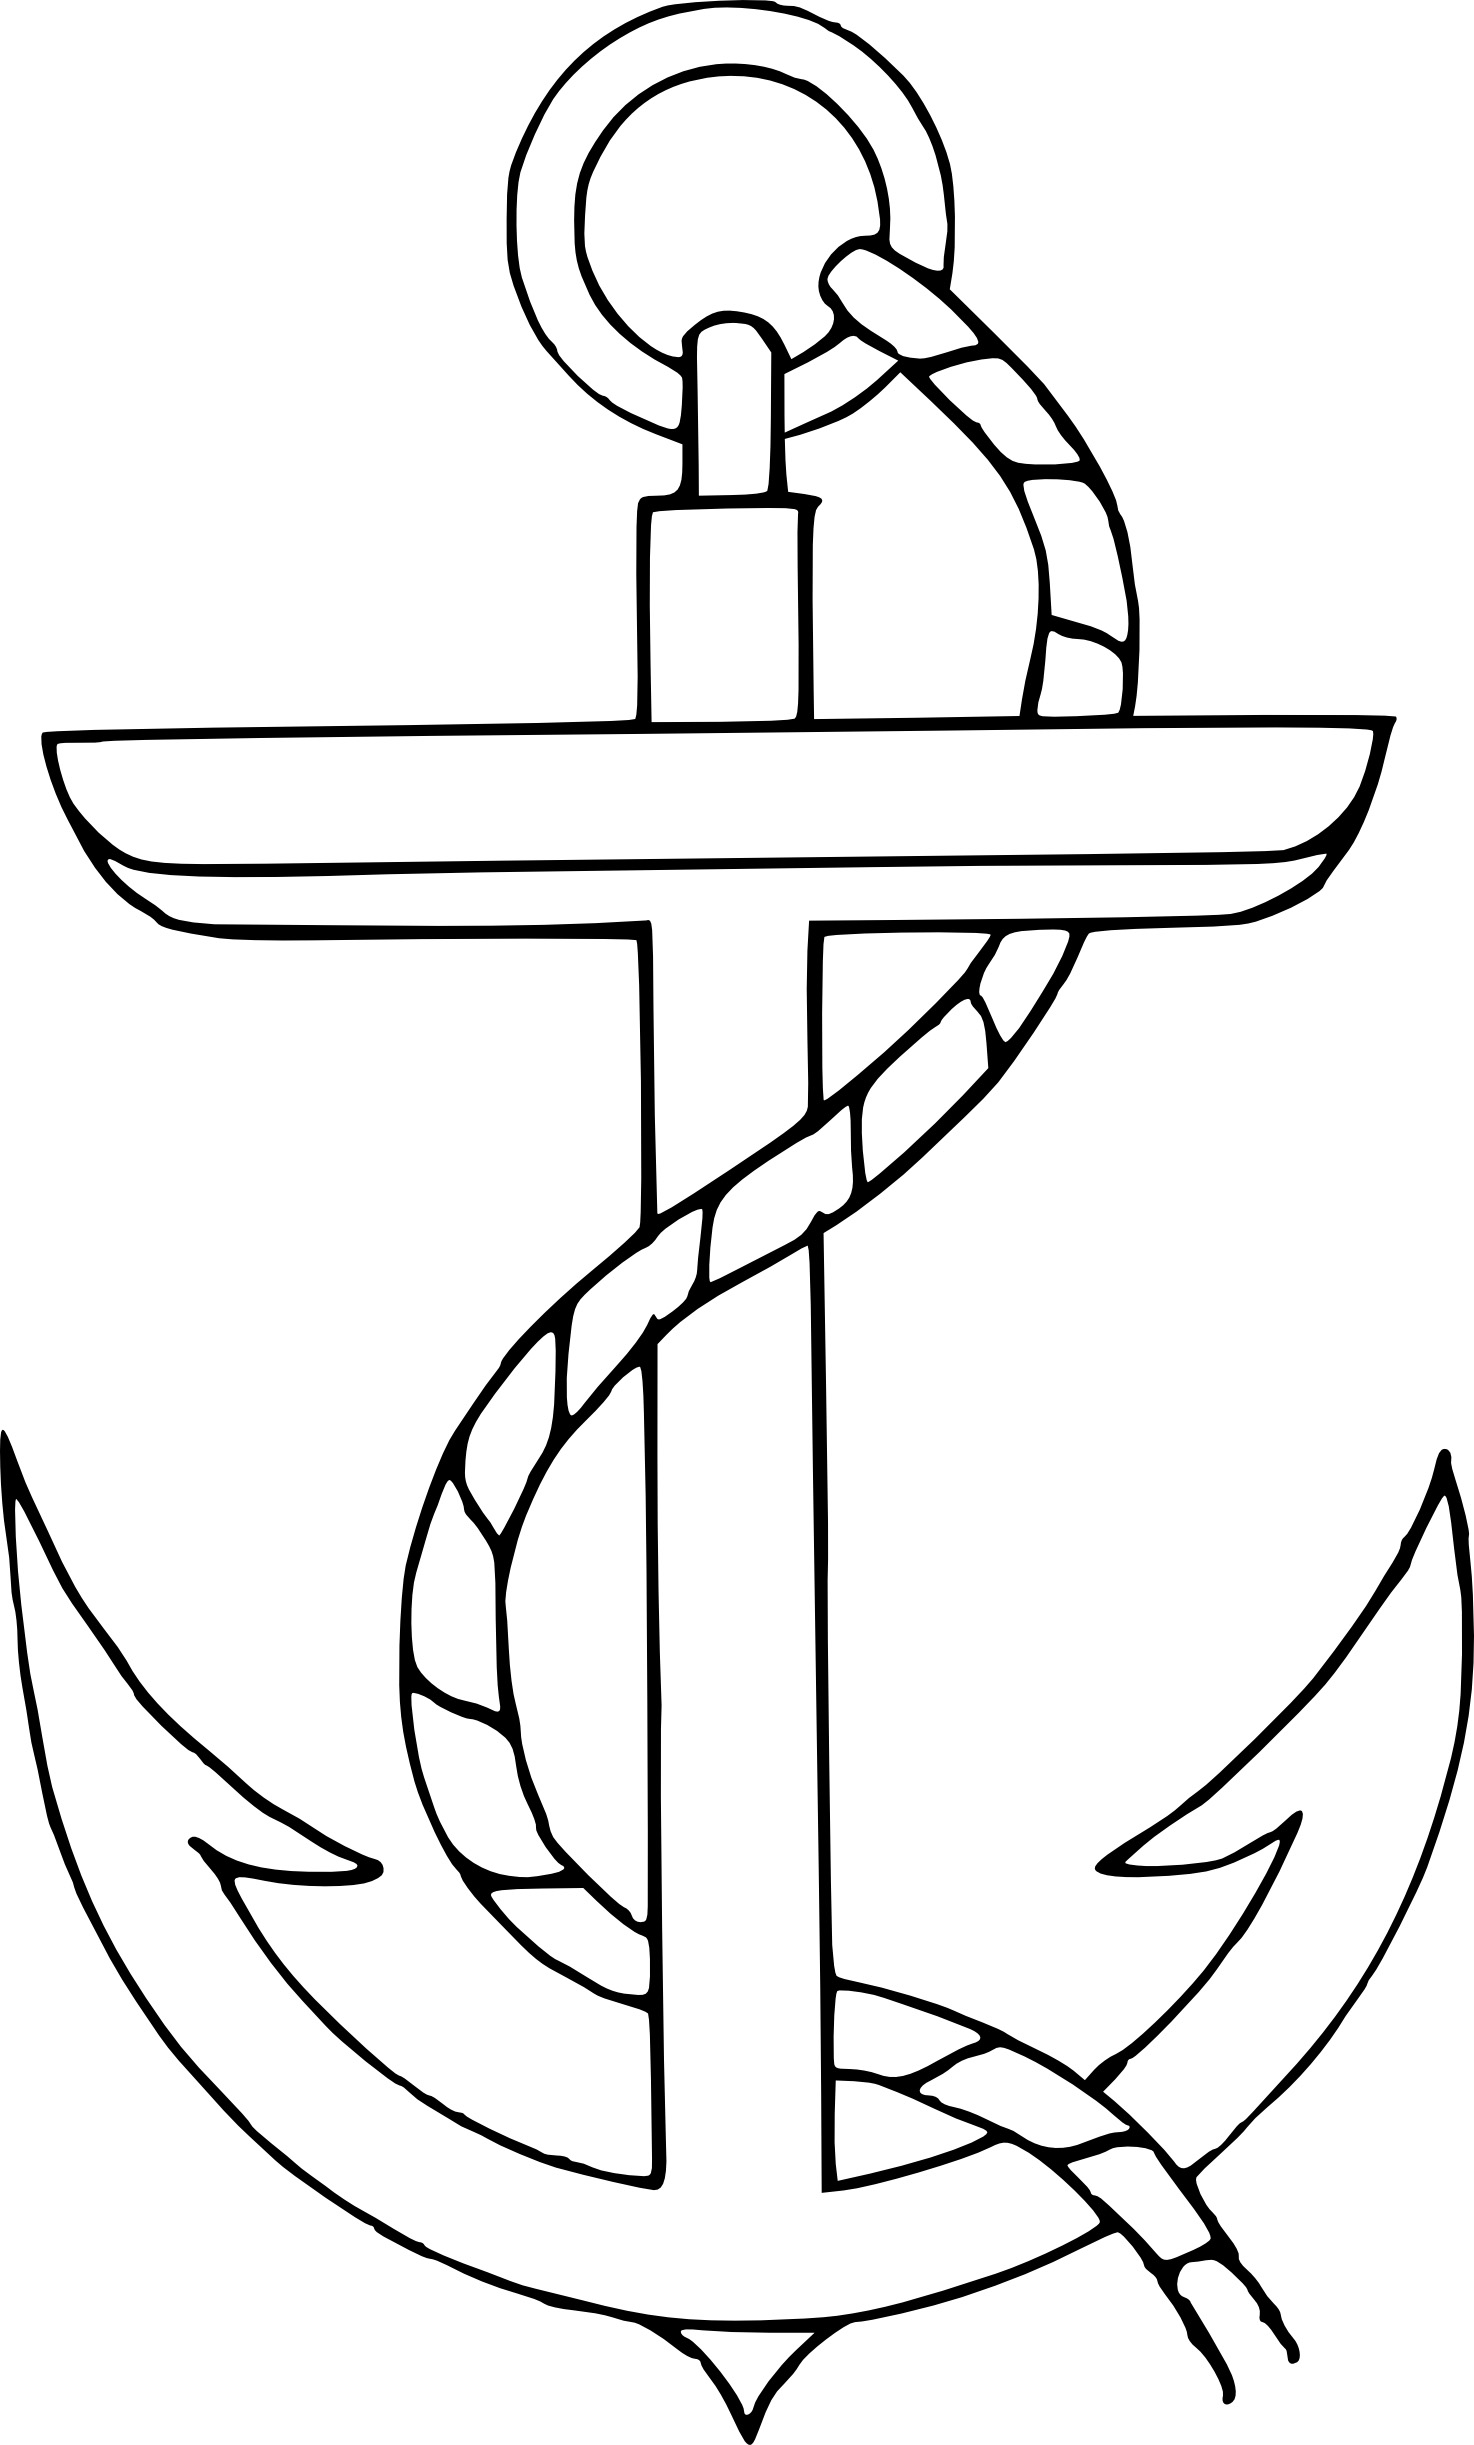 Free Anchor Cliparts, Download Free Clip Art, Free Clip Art.